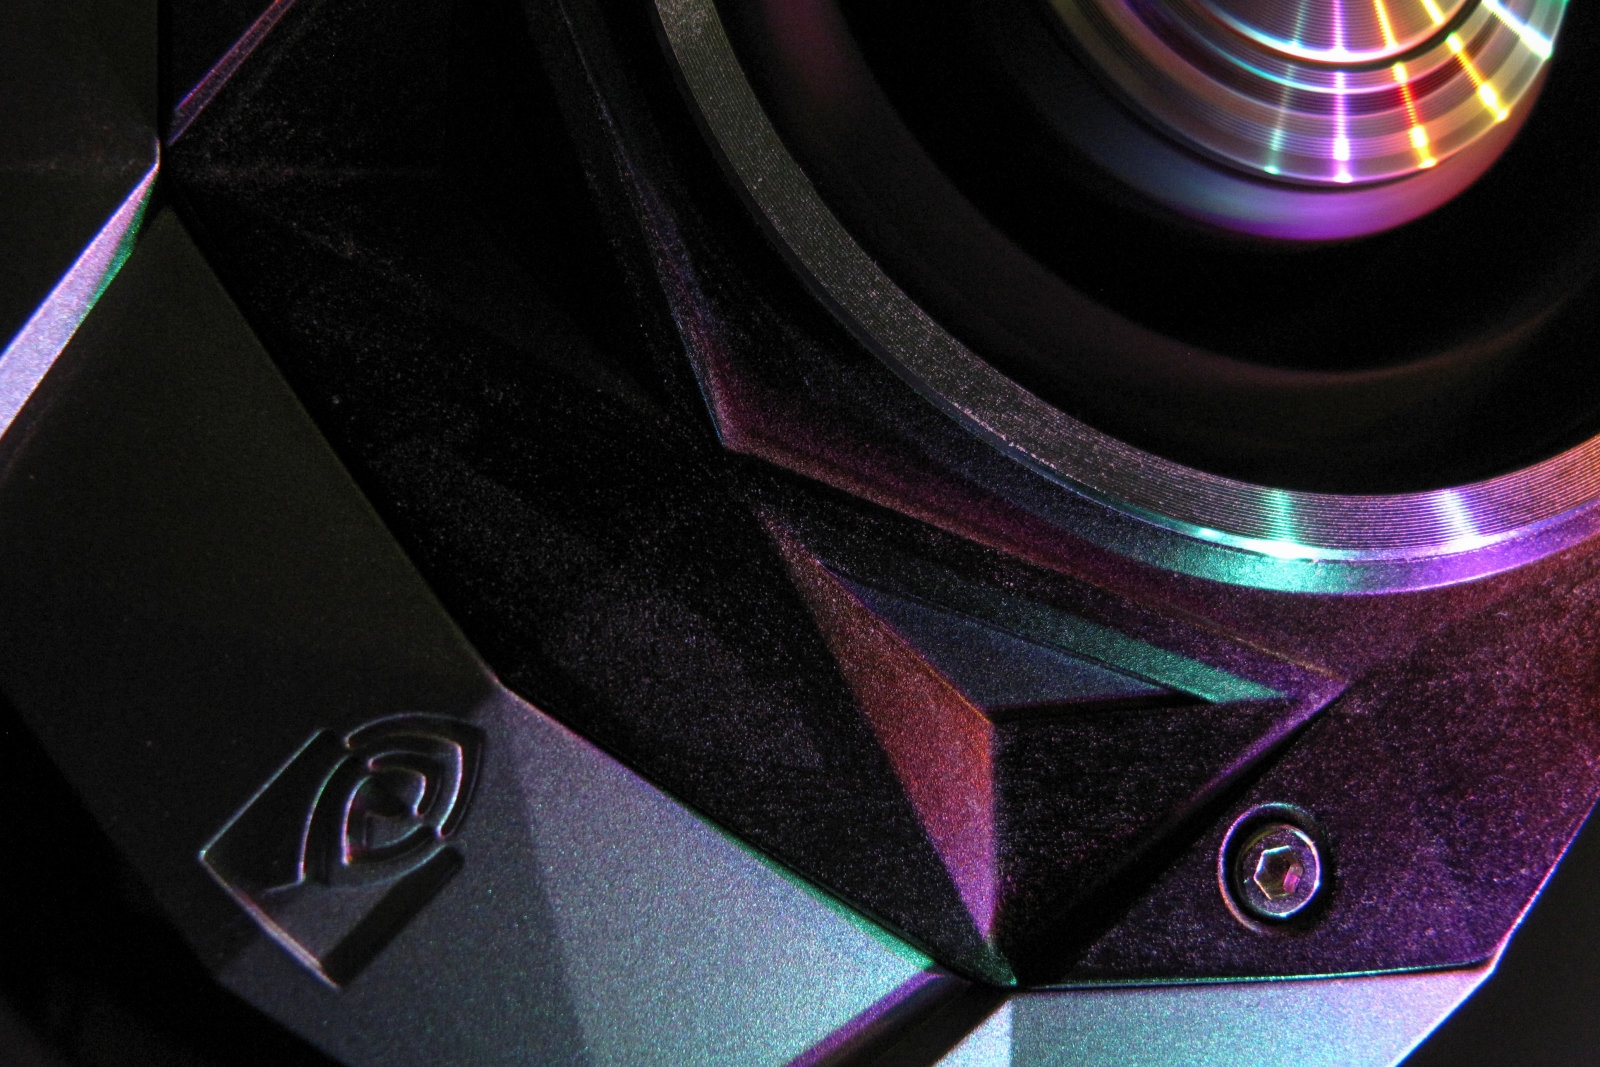 Leaks reveal NVIDIA GeForce RTX cards ahead of August 20th event | DeviceDaily.com